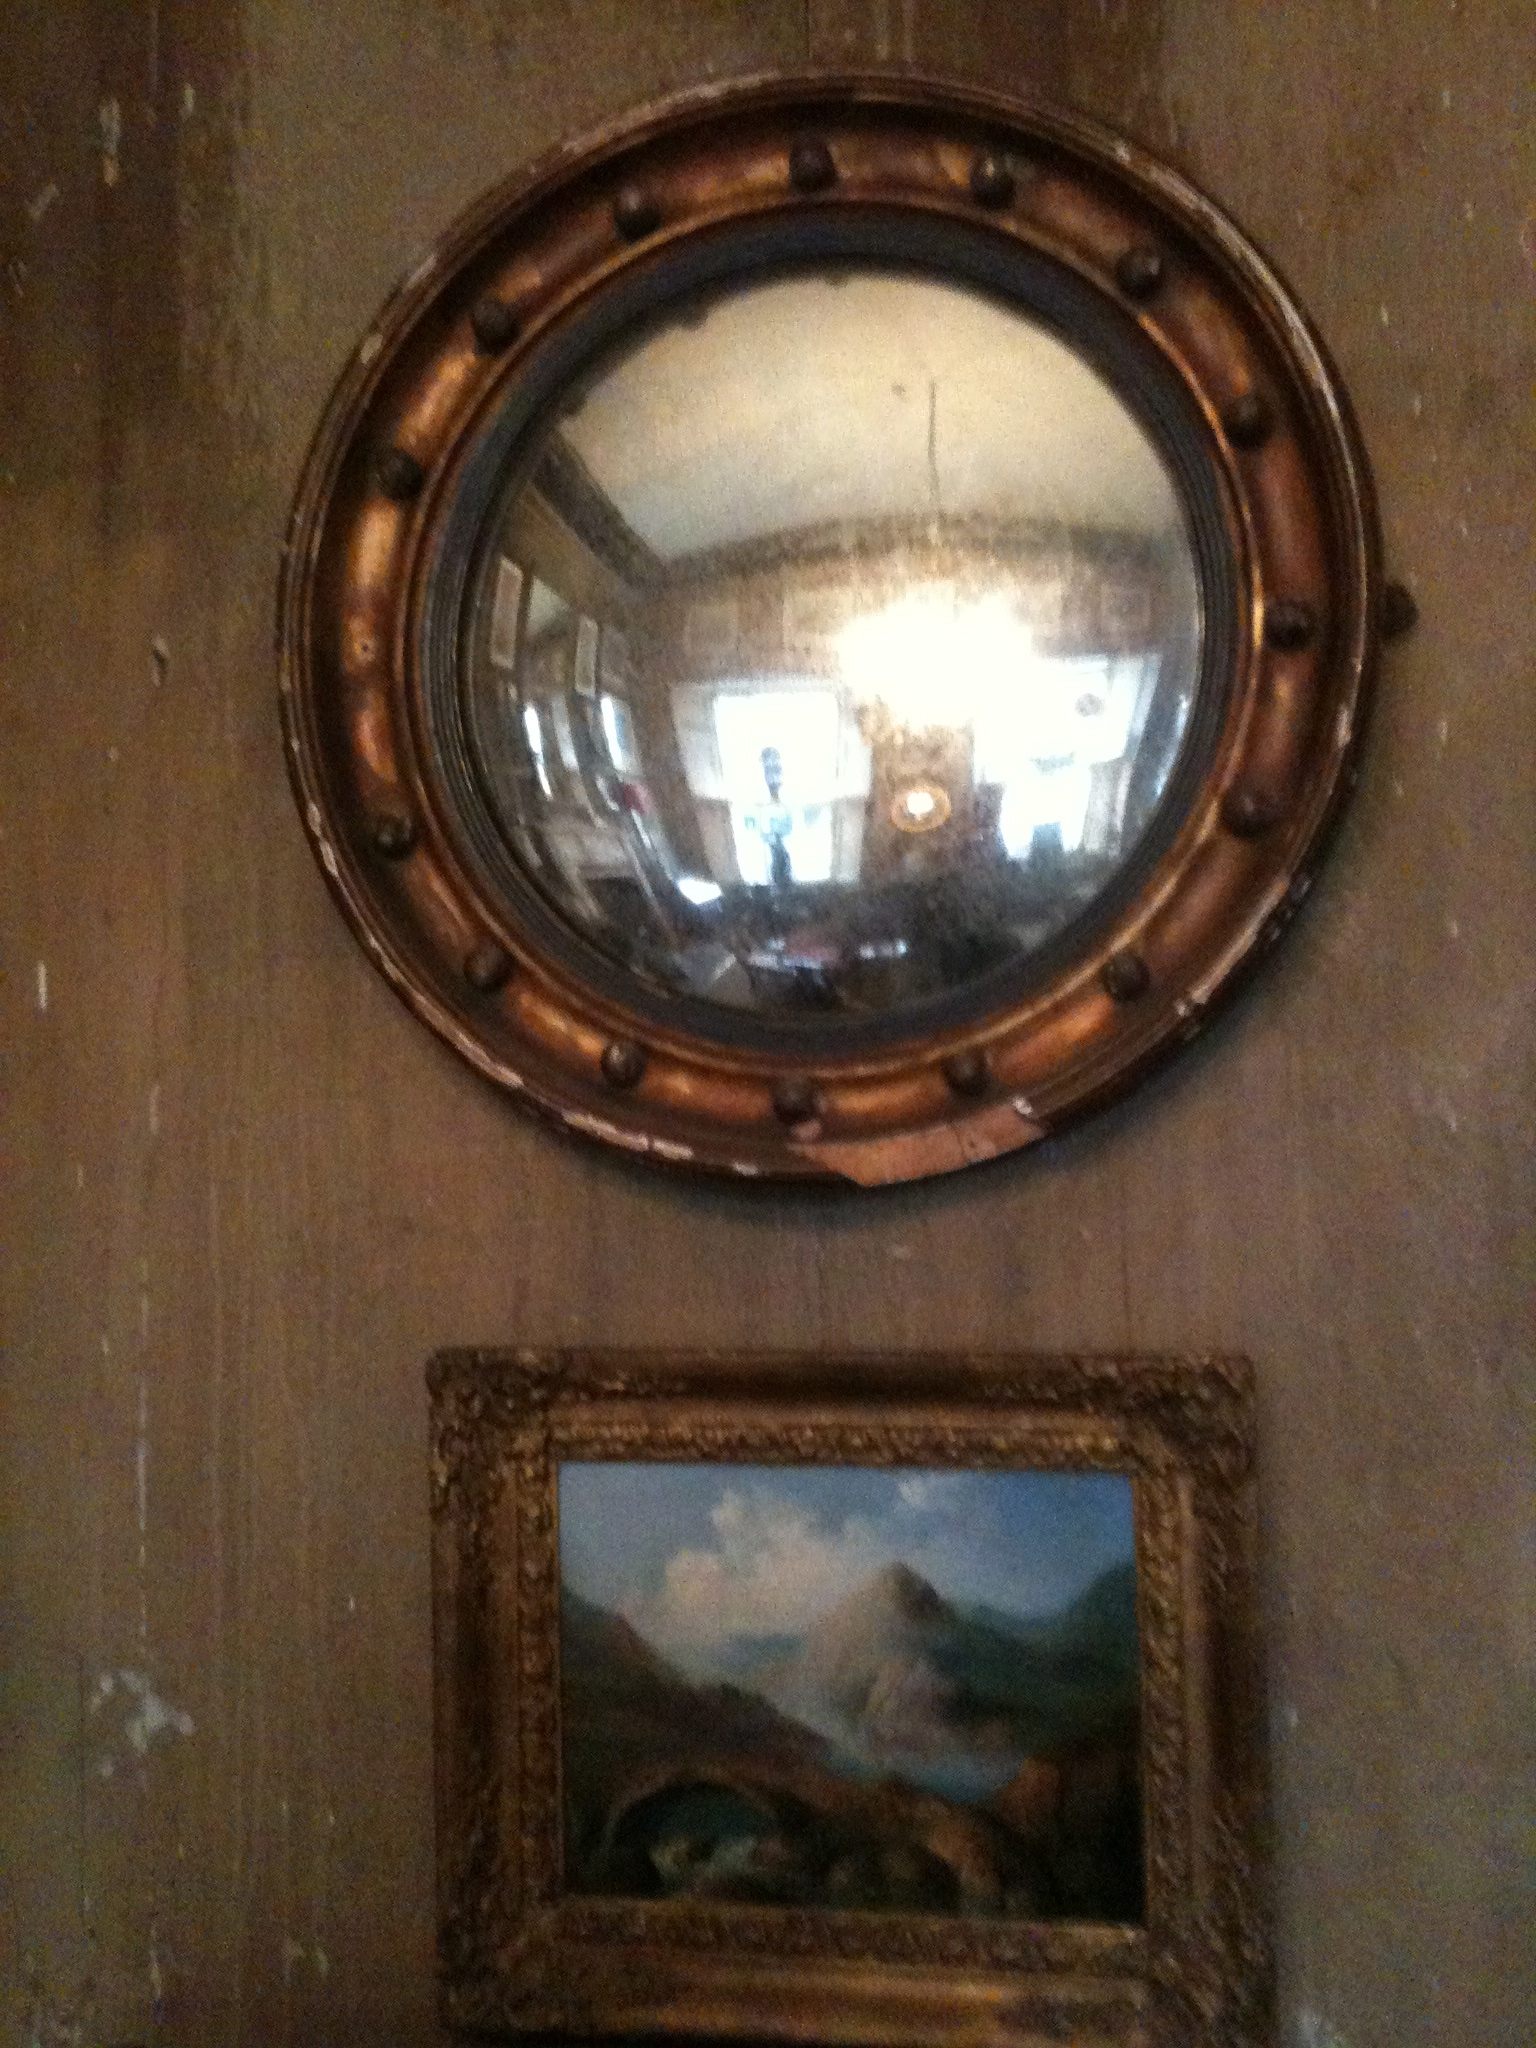 Antique Mirrors At Lasco Vauxhall London Pinterest For Antique Mirrors London (Image 4 of 15)